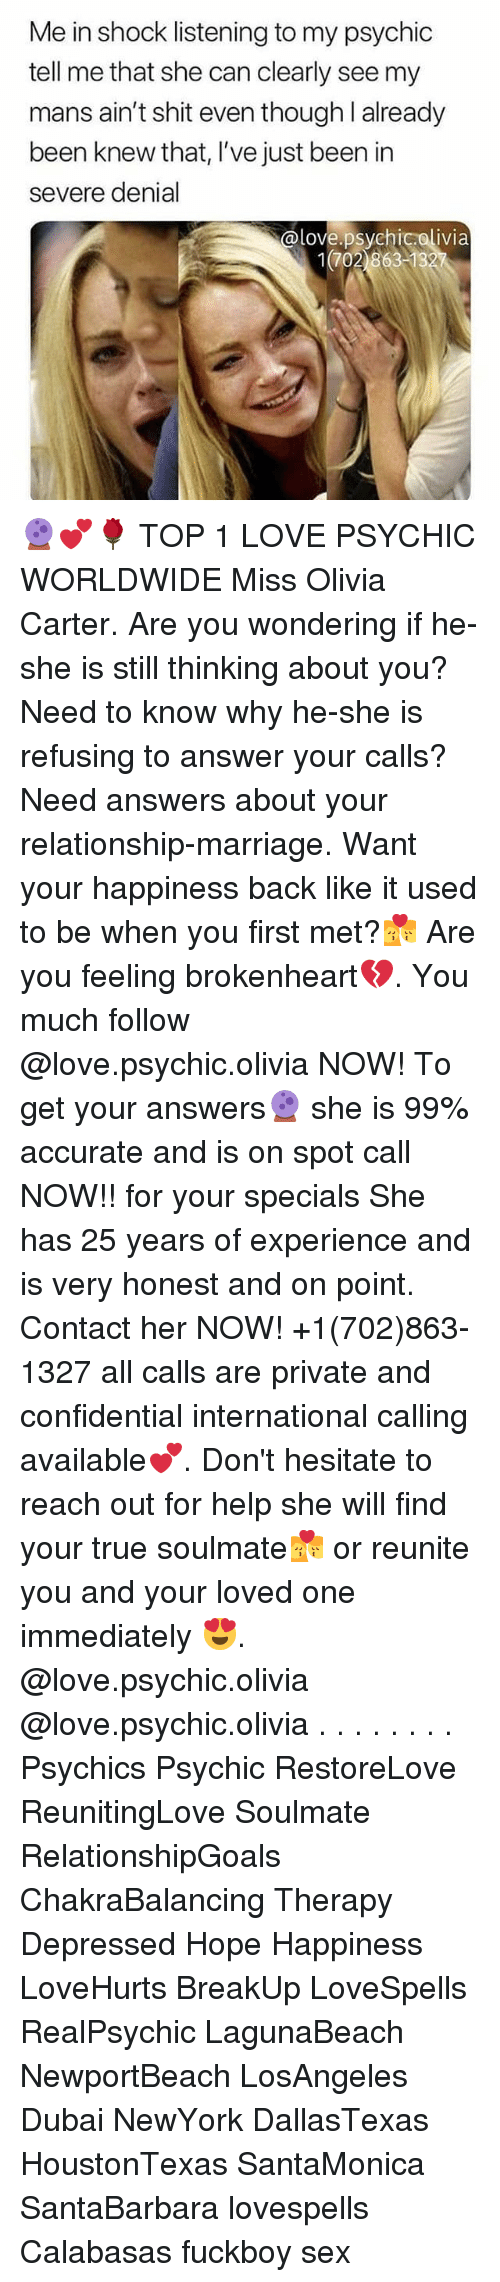 Fuckboy, Love, and Marriage: Me in shock listening to my psychic  tell me that she can clearly see my  mans ain't shit even though l already  been knew that, I've just been in  severe denial  @love.psychicolivia  1702 86313 🔮💕🌹 TOP 1 LOVE PSYCHIC WORLDWIDE Miss Olivia Carter. Are you wondering if he-she is still thinking about you? Need to know why he-she is refusing to answer your calls? Need answers about your relationship-marriage. Want your happiness back like it used to be when you first met?💏 Are you feeling brokenheart💔. You much follow @love.psychic.olivia NOW! To get your answers🔮 she is 99% accurate and is on spot call NOW!! for your specials She has 25 years of experience and is very honest and on point. Contact her NOW! +1(702)863-1327 all calls are private and confidential international calling available💕. Don't hesitate to reach out for help she will find your true soulmate💏 or reunite you and your loved one immediately 😍. @love.psychic.olivia @love.psychic.olivia . . . . . . . . Psychics Psychic RestoreLove ReunitingLove Soulmate RelationshipGoals ChakraBalancing Therapy Depressed Hope Happiness LoveHurts BreakUp LoveSpells RealPsychic LagunaBeach NewportBeach LosAngeles Dubai NewYork DallasTexas HoustonTexas SantaMonica SantaBarbara lovespells Calabasas fuckboy sex